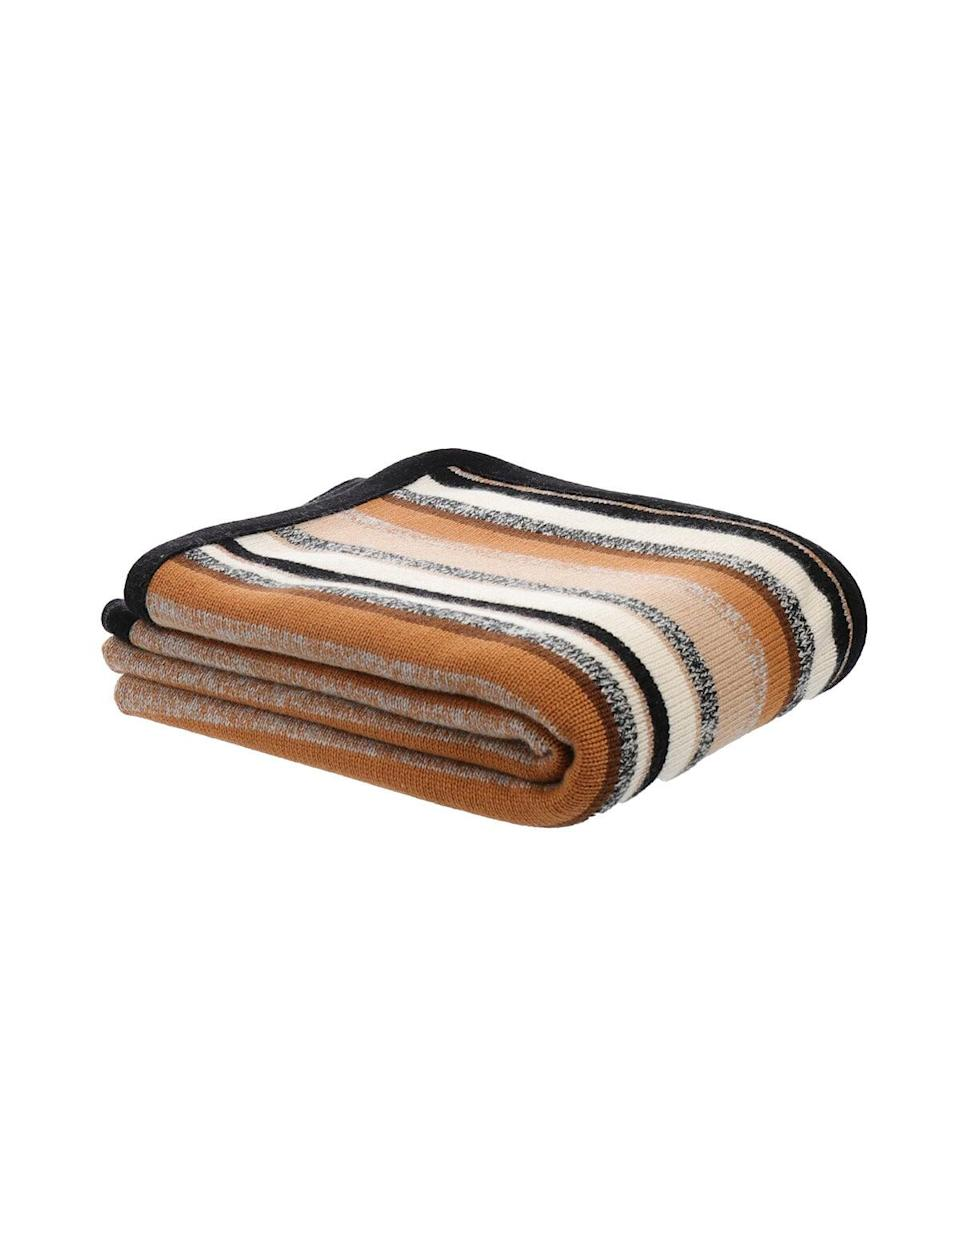 """<p><span>Scaglione Cashmere Blanket</span> ($885)</p> <p>""""This year, since we can't really give people hugs, I'm giving one very special person on my list a cashmere blanket from Scaglione. I have a scarf, hat and sweater in this colorway so maybe it will be like getting a hug from me! I'm into giving the gift of hygge!"""" - NR </p>"""